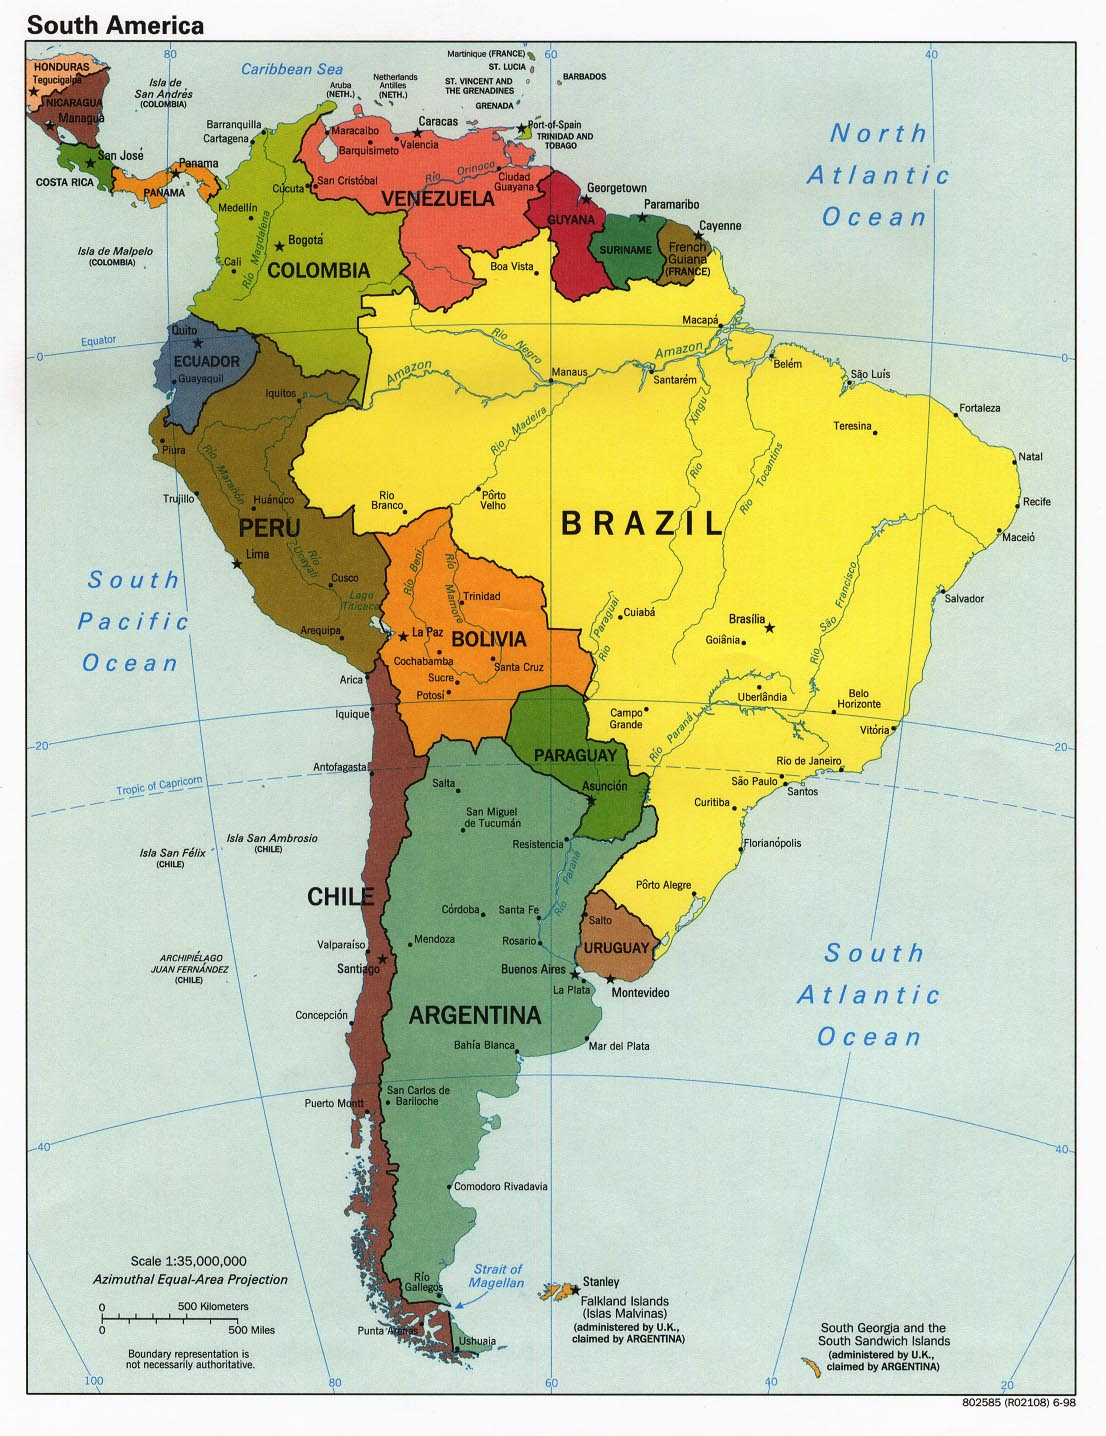 Geographic Region map of South America